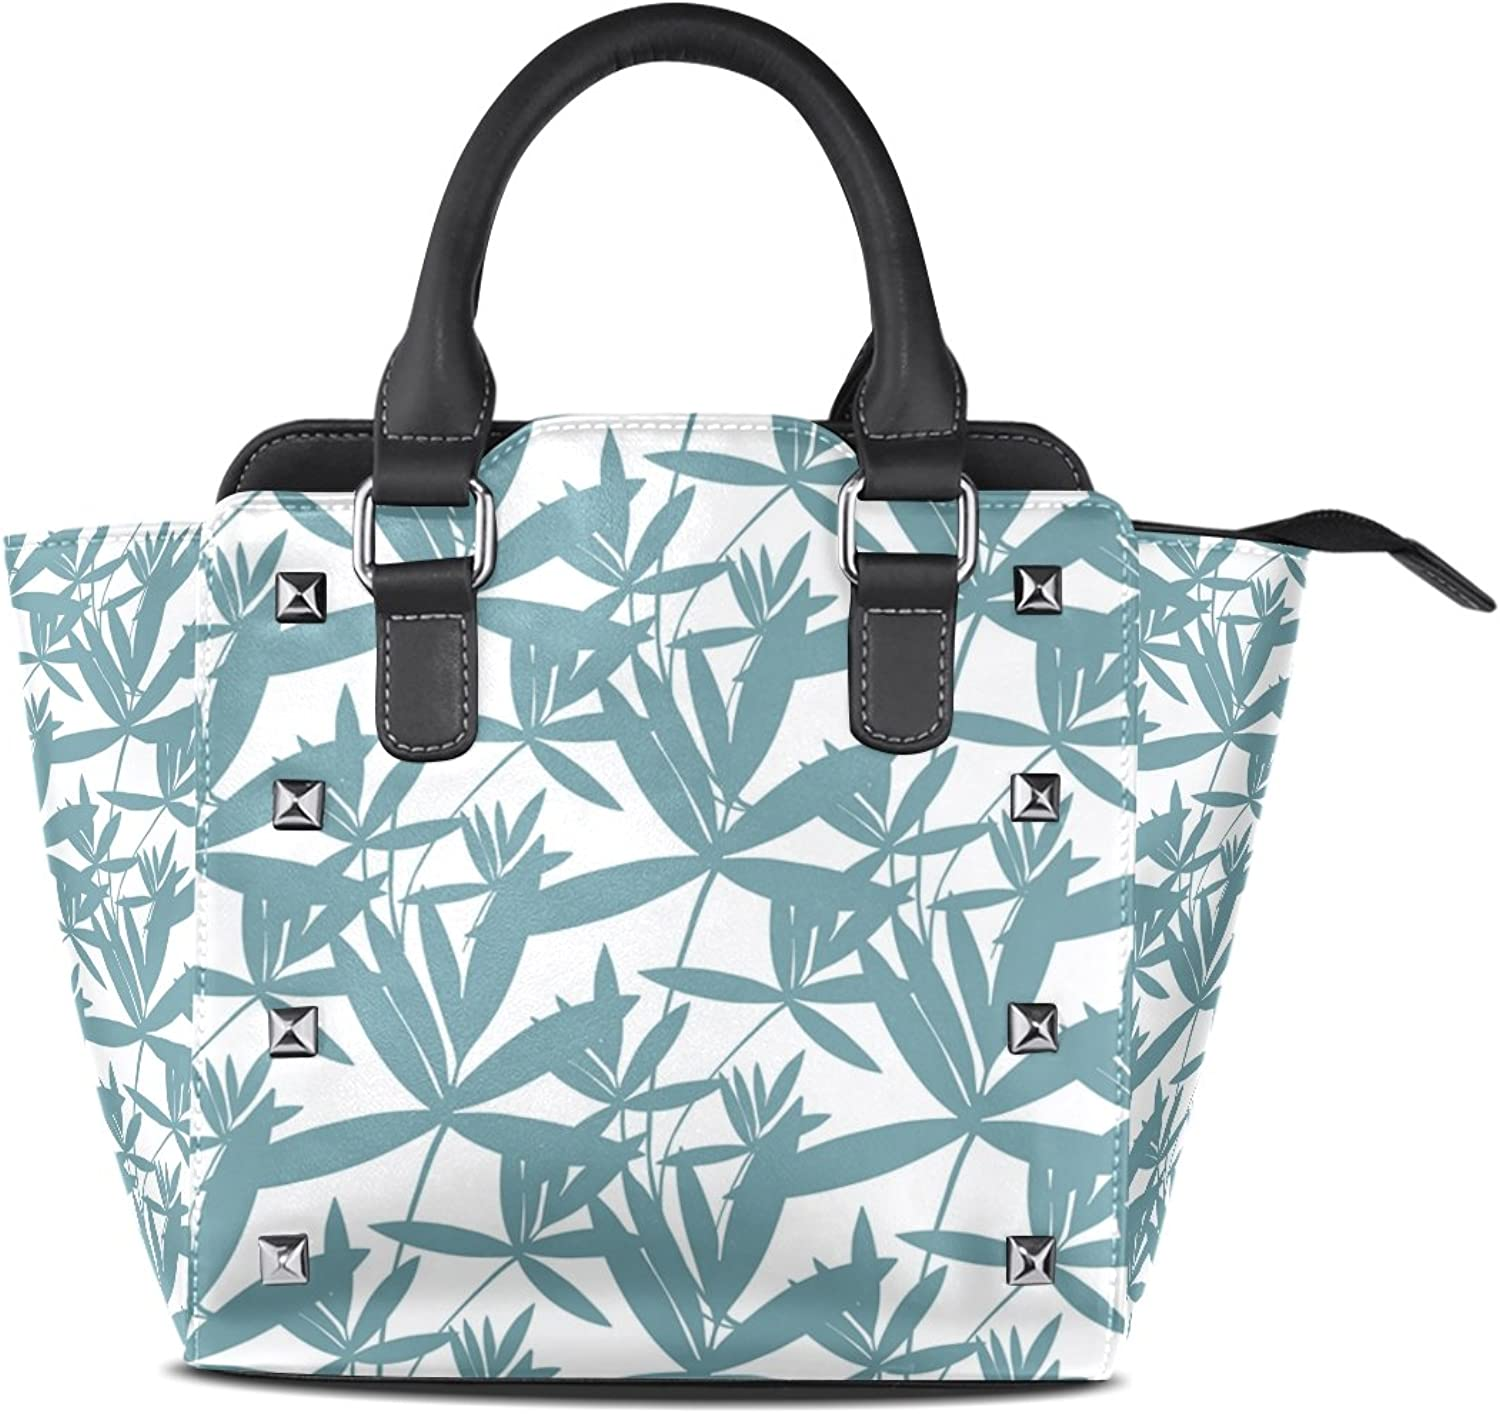 Sunlome Floral Foliage Print Women's Leather Tote Shoulder Bags Handbags